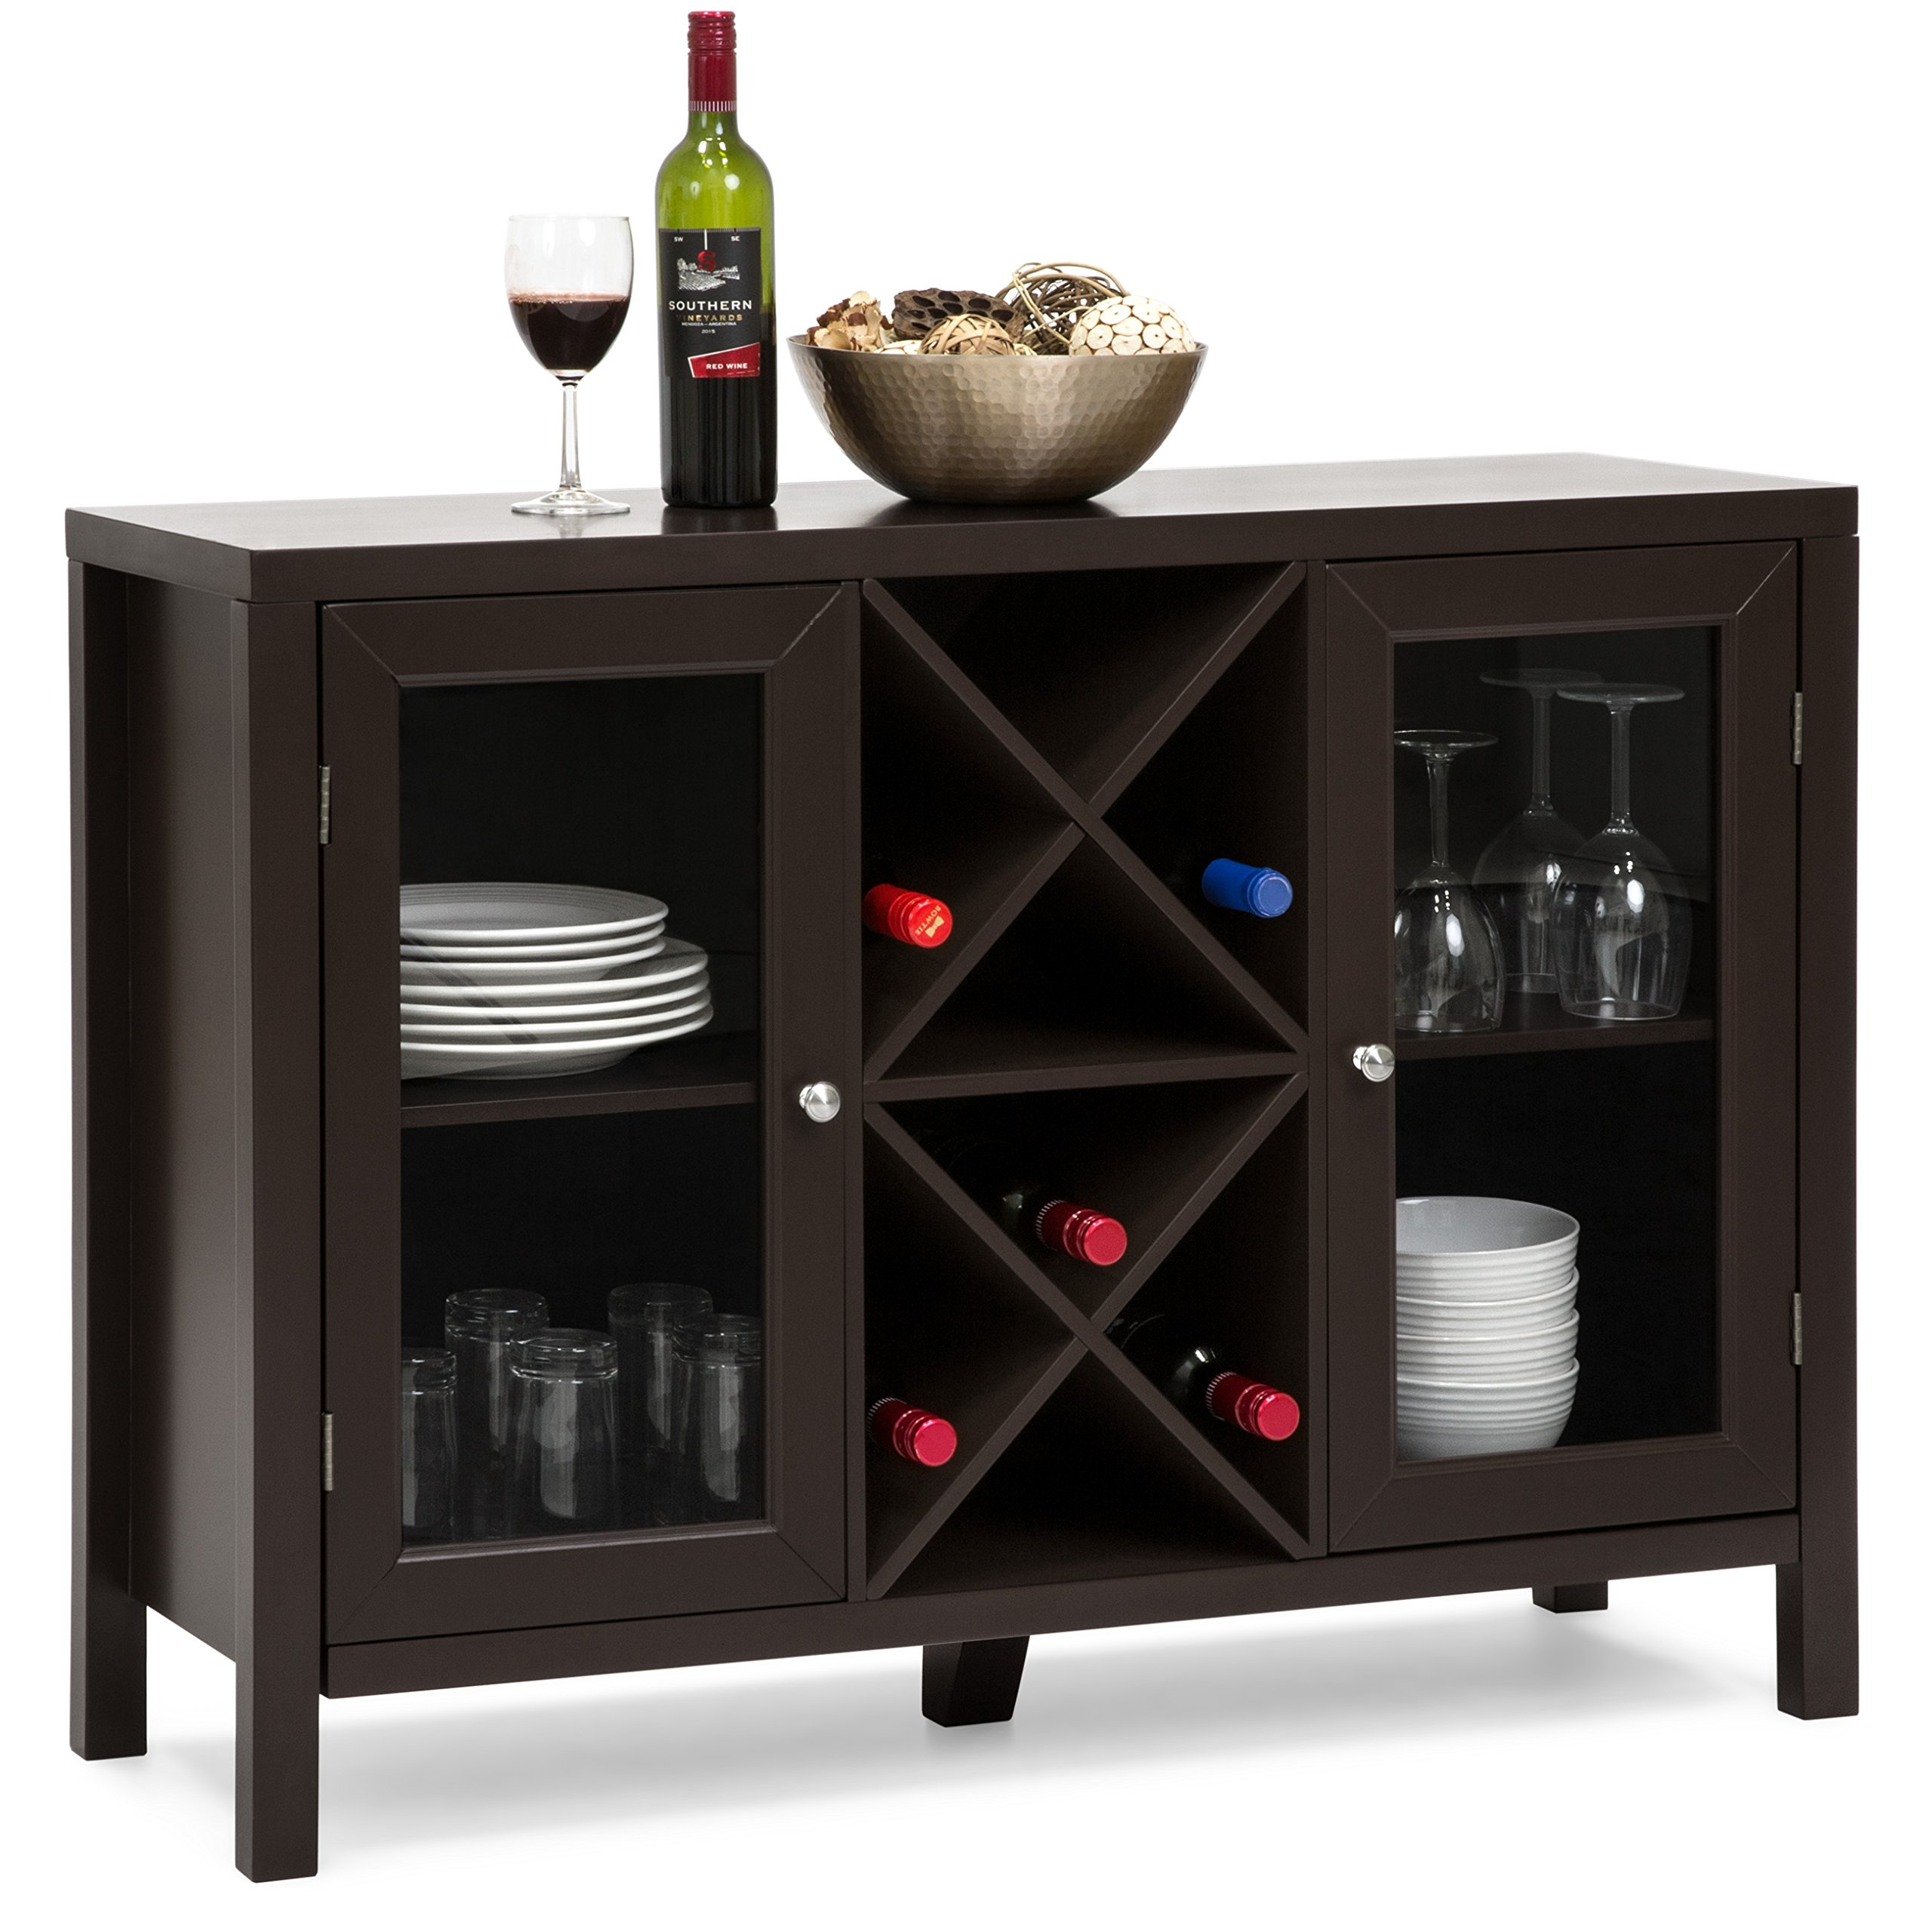 Best Choice Products Wooden Wine Rack Console Sideboard Table w/ Storage - Espresso